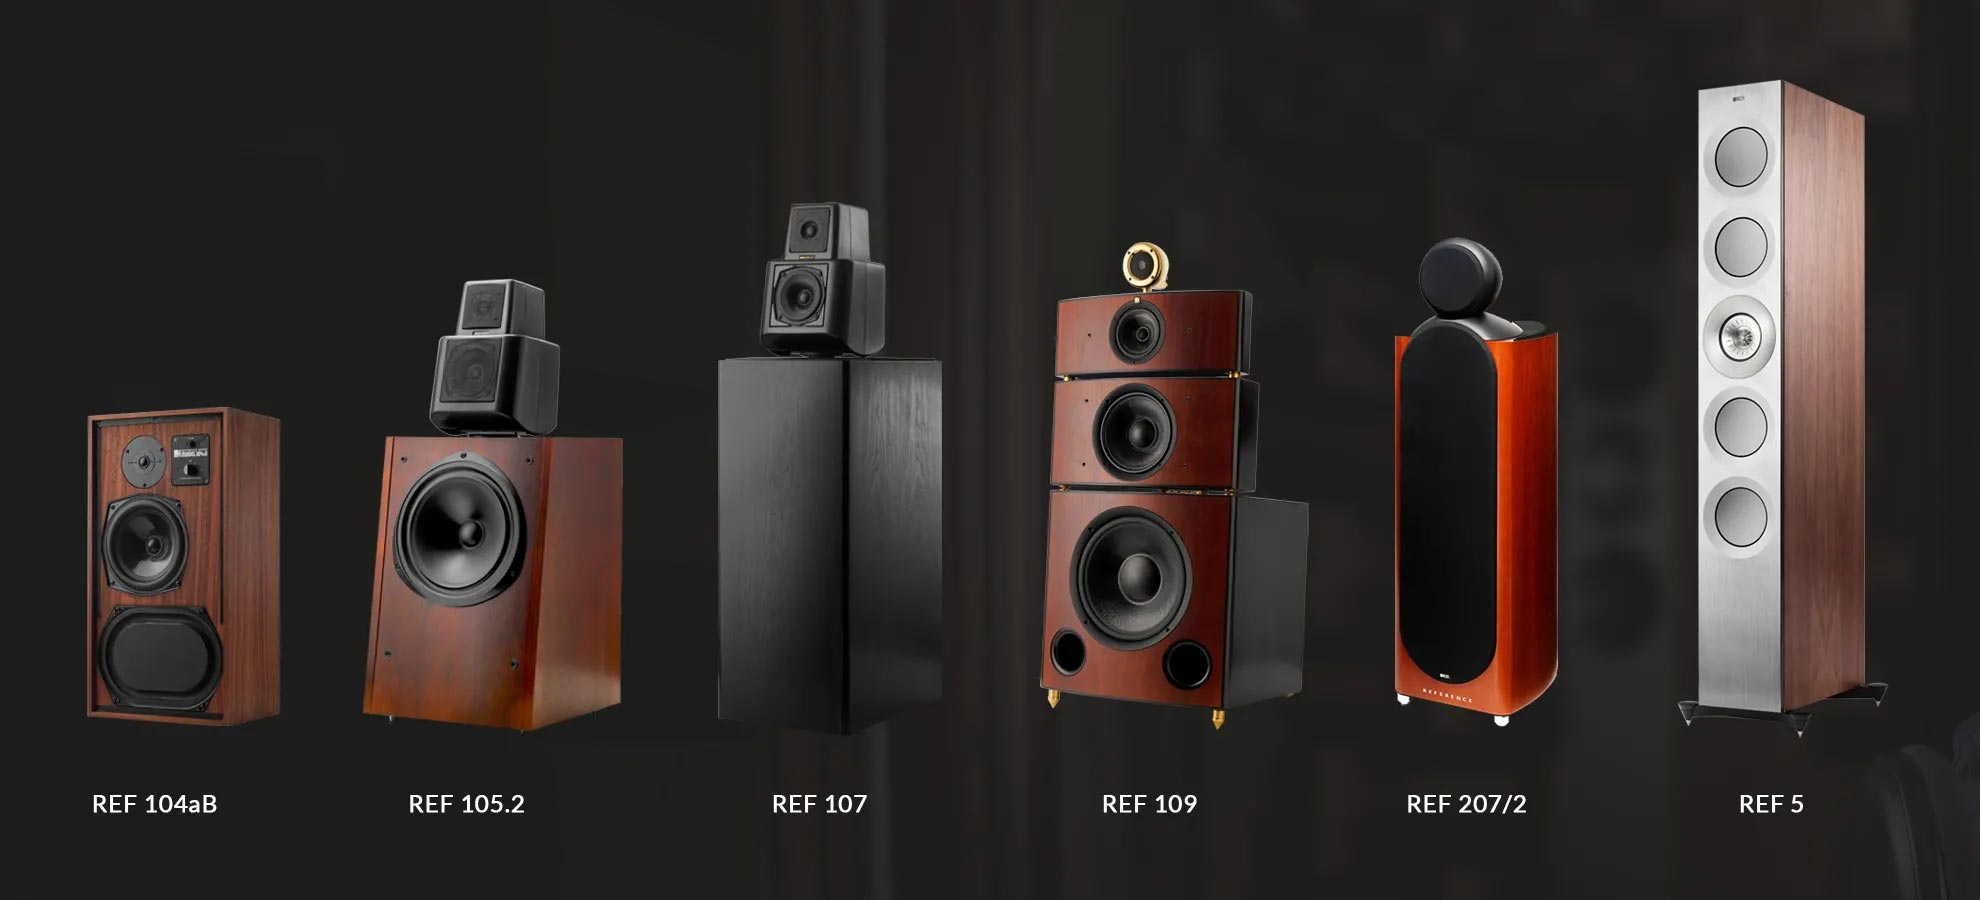 KEF REFERENCE Series REFERENCE 1 standmount speakers.